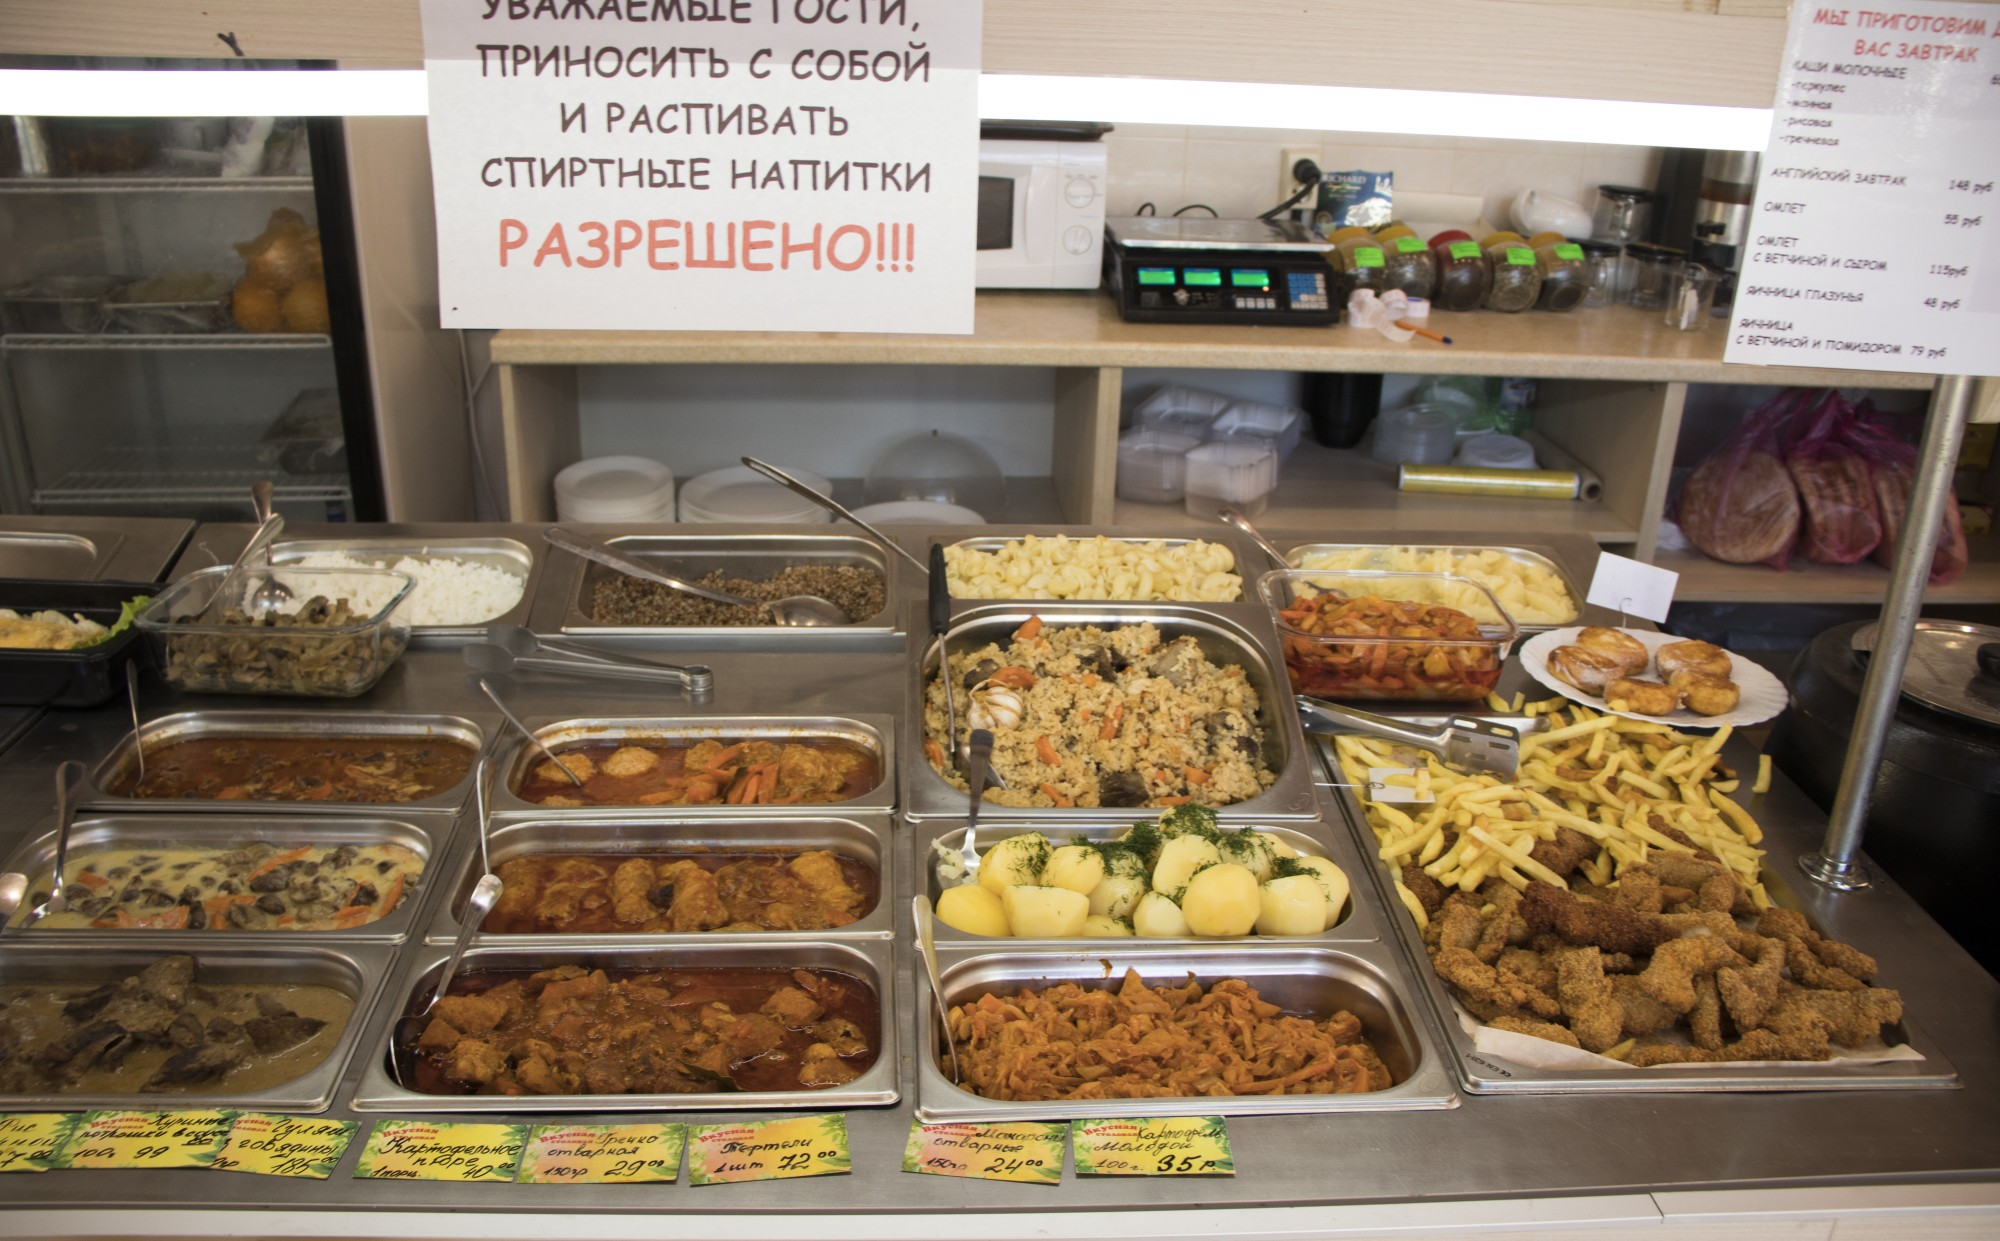 Everything that a tourist needs to know about the Crimean canteens. Prices and that they generally have a dining room, rubles, breakfast, You can, four, almost, Tasty, you can, canteens, such, By the way, everything, a lot, you want more homely, Dining, principle, all kinds